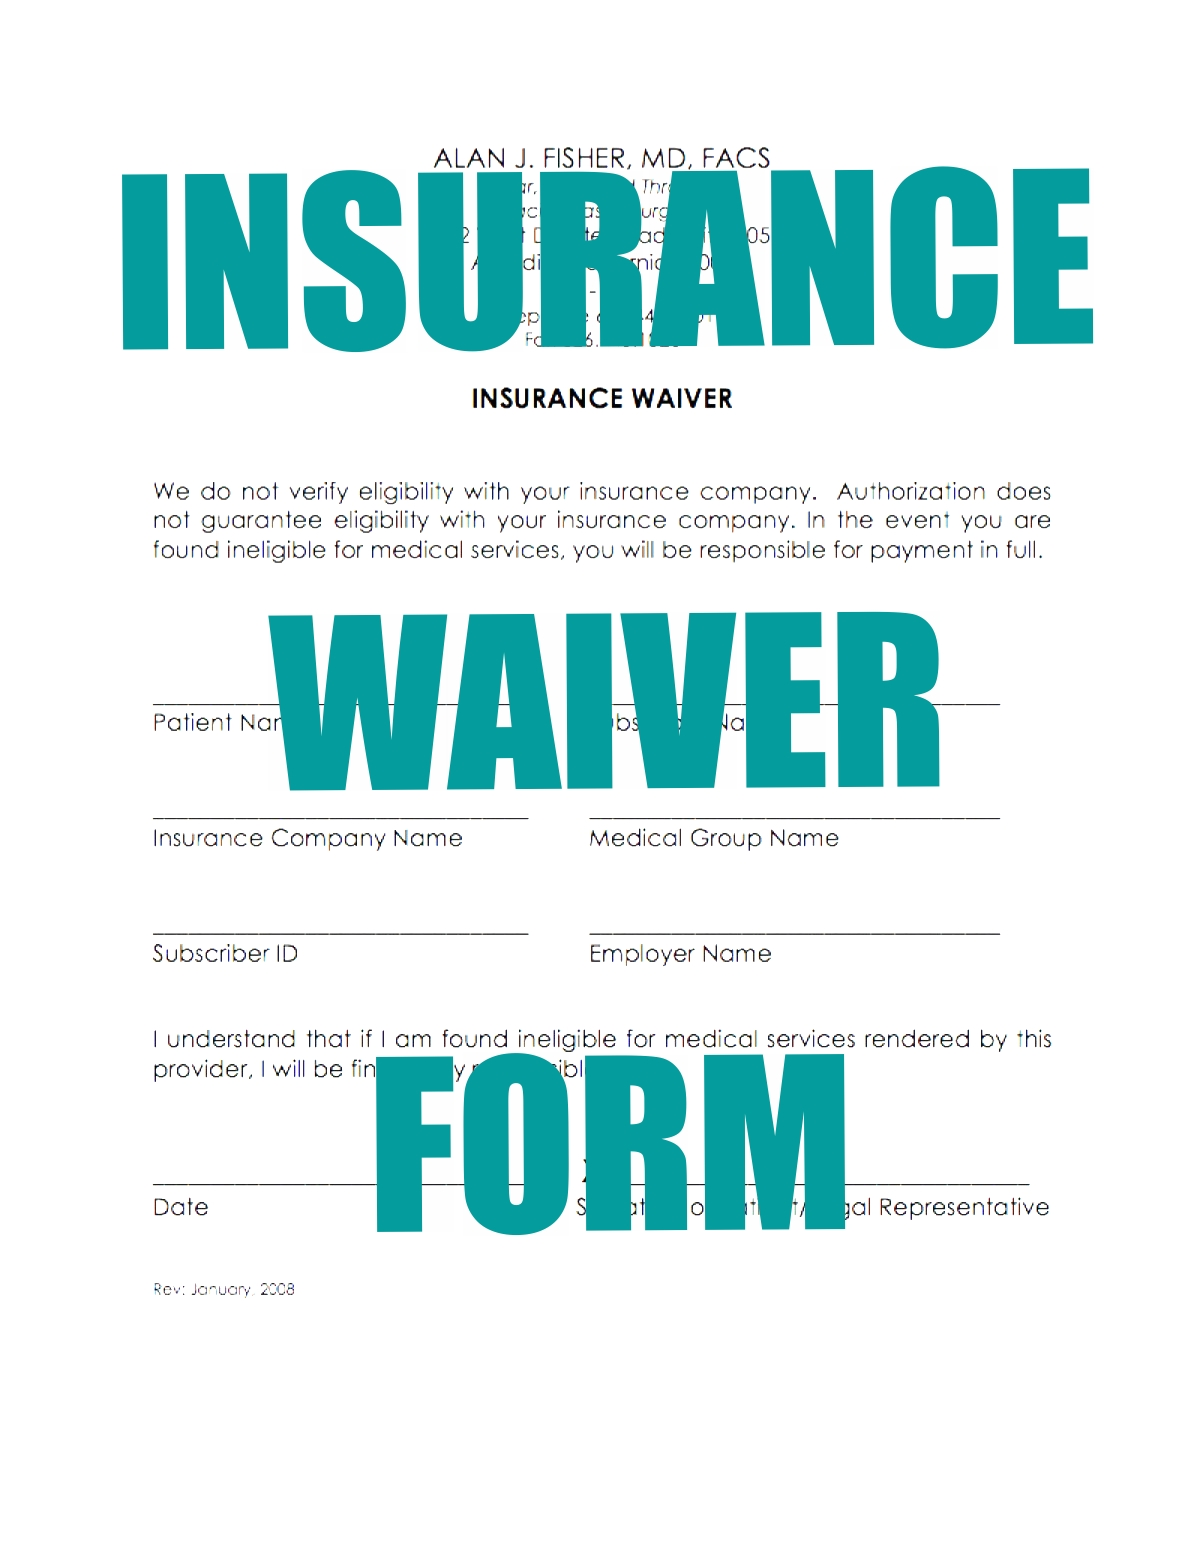 Insurance Waiver - click to open